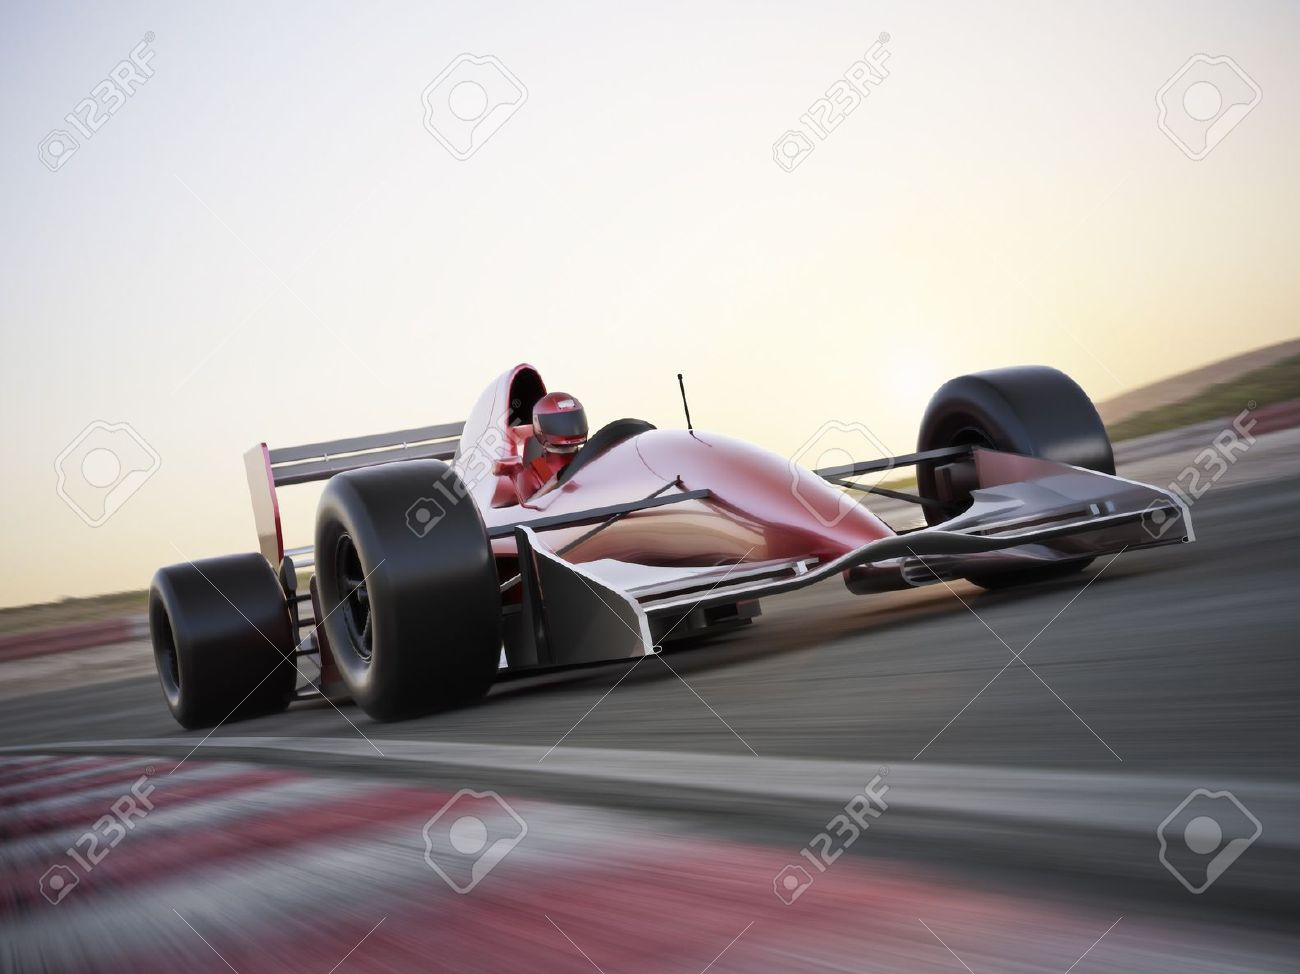 Indy car racer with blurred background 3d model stock photo picture indy car racer with blurred background 3d model stock photo 16173923 voltagebd Images